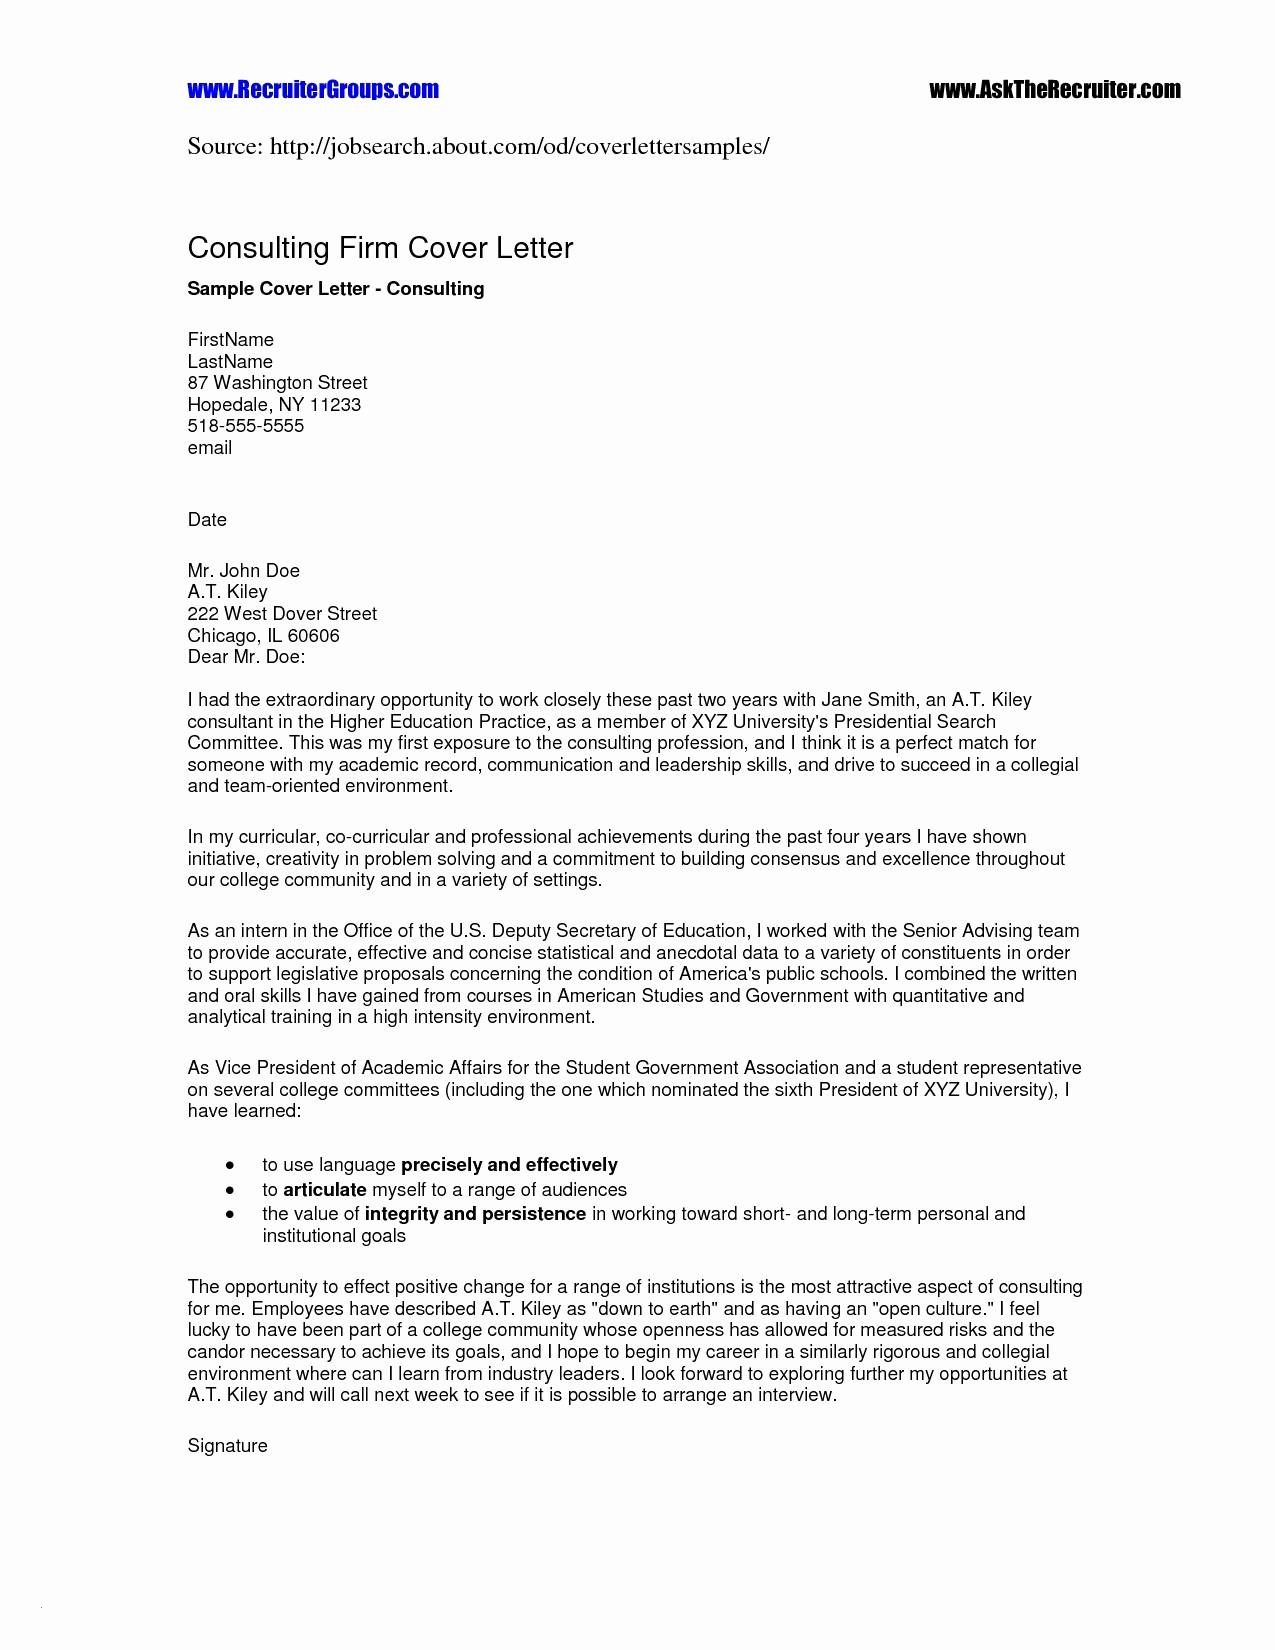 Government Job Cover Letter Template Collection